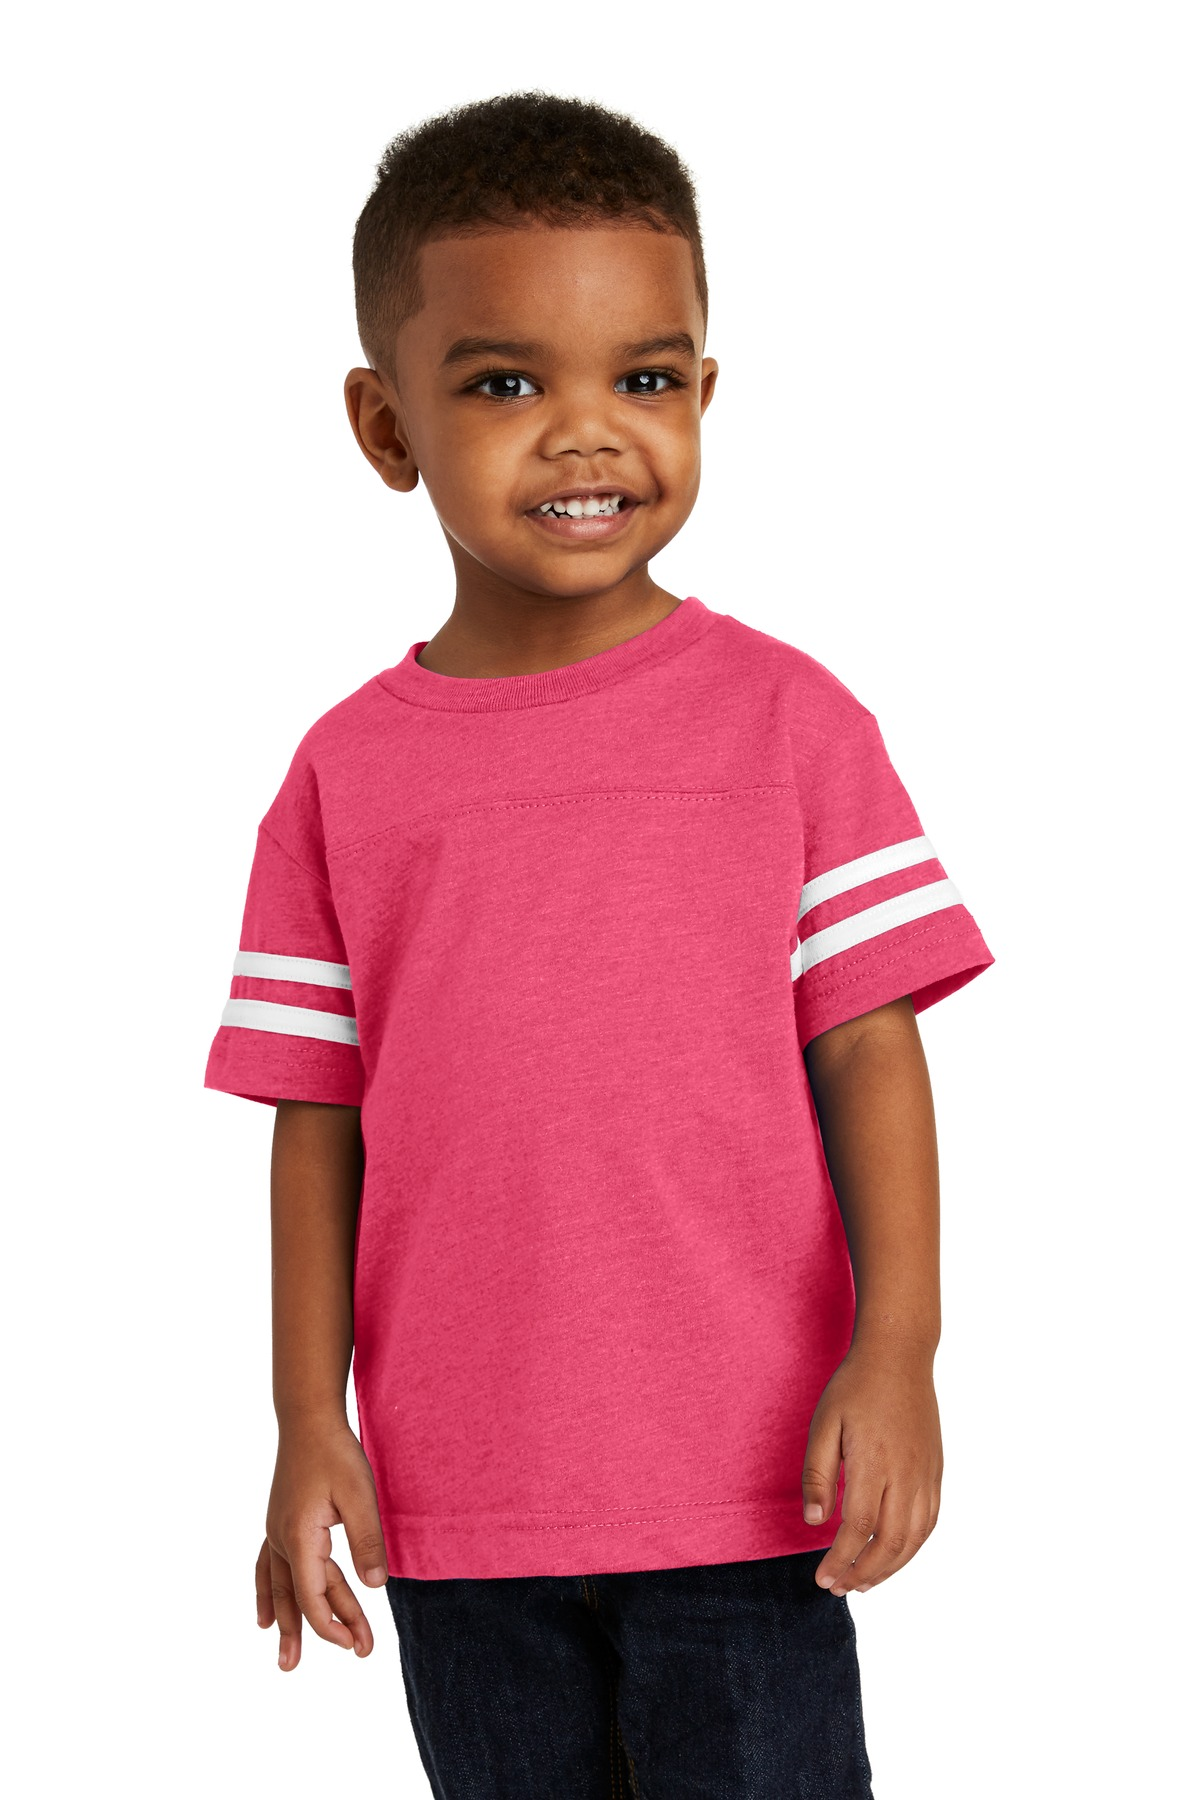 Rabbit Skins ™  Toddler Football Fine Jersey Tee. RS3037 - Vintage Hot Pink/ Blended White